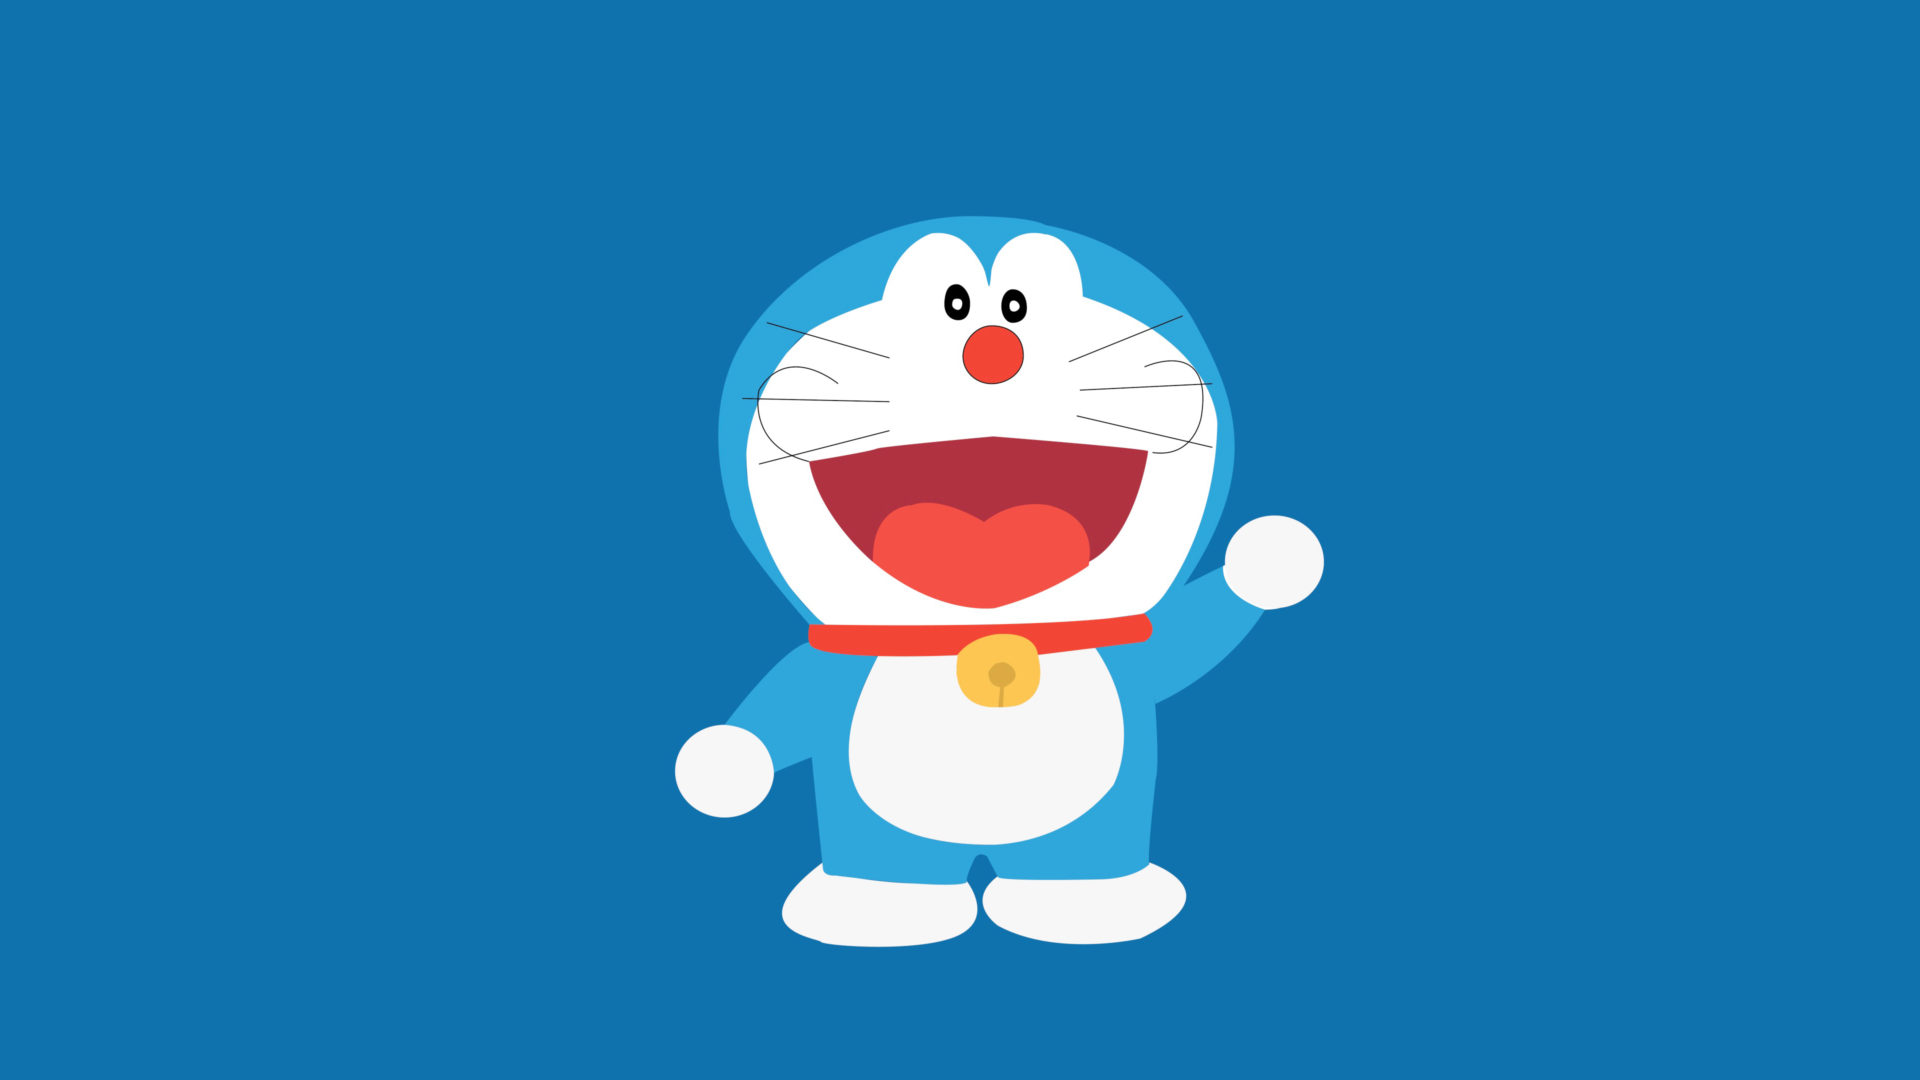 doraemon hd wallpapers 1920x1080 amazing wallpaper hd library